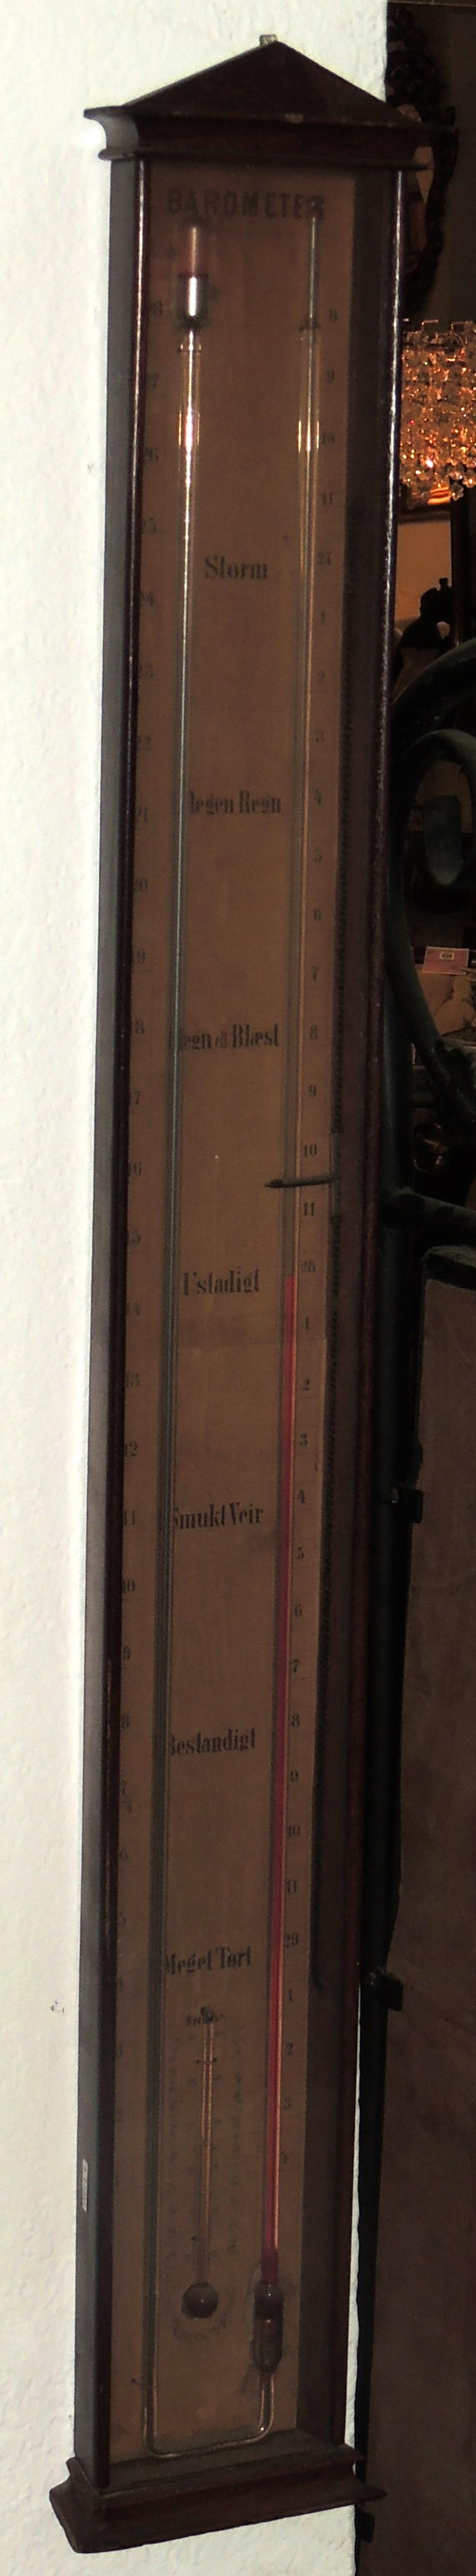 THERMOMETER-BAROMETER Denmark, Hansen Kiobenhaum princ. s.XX, in wood. Height: 93 cm